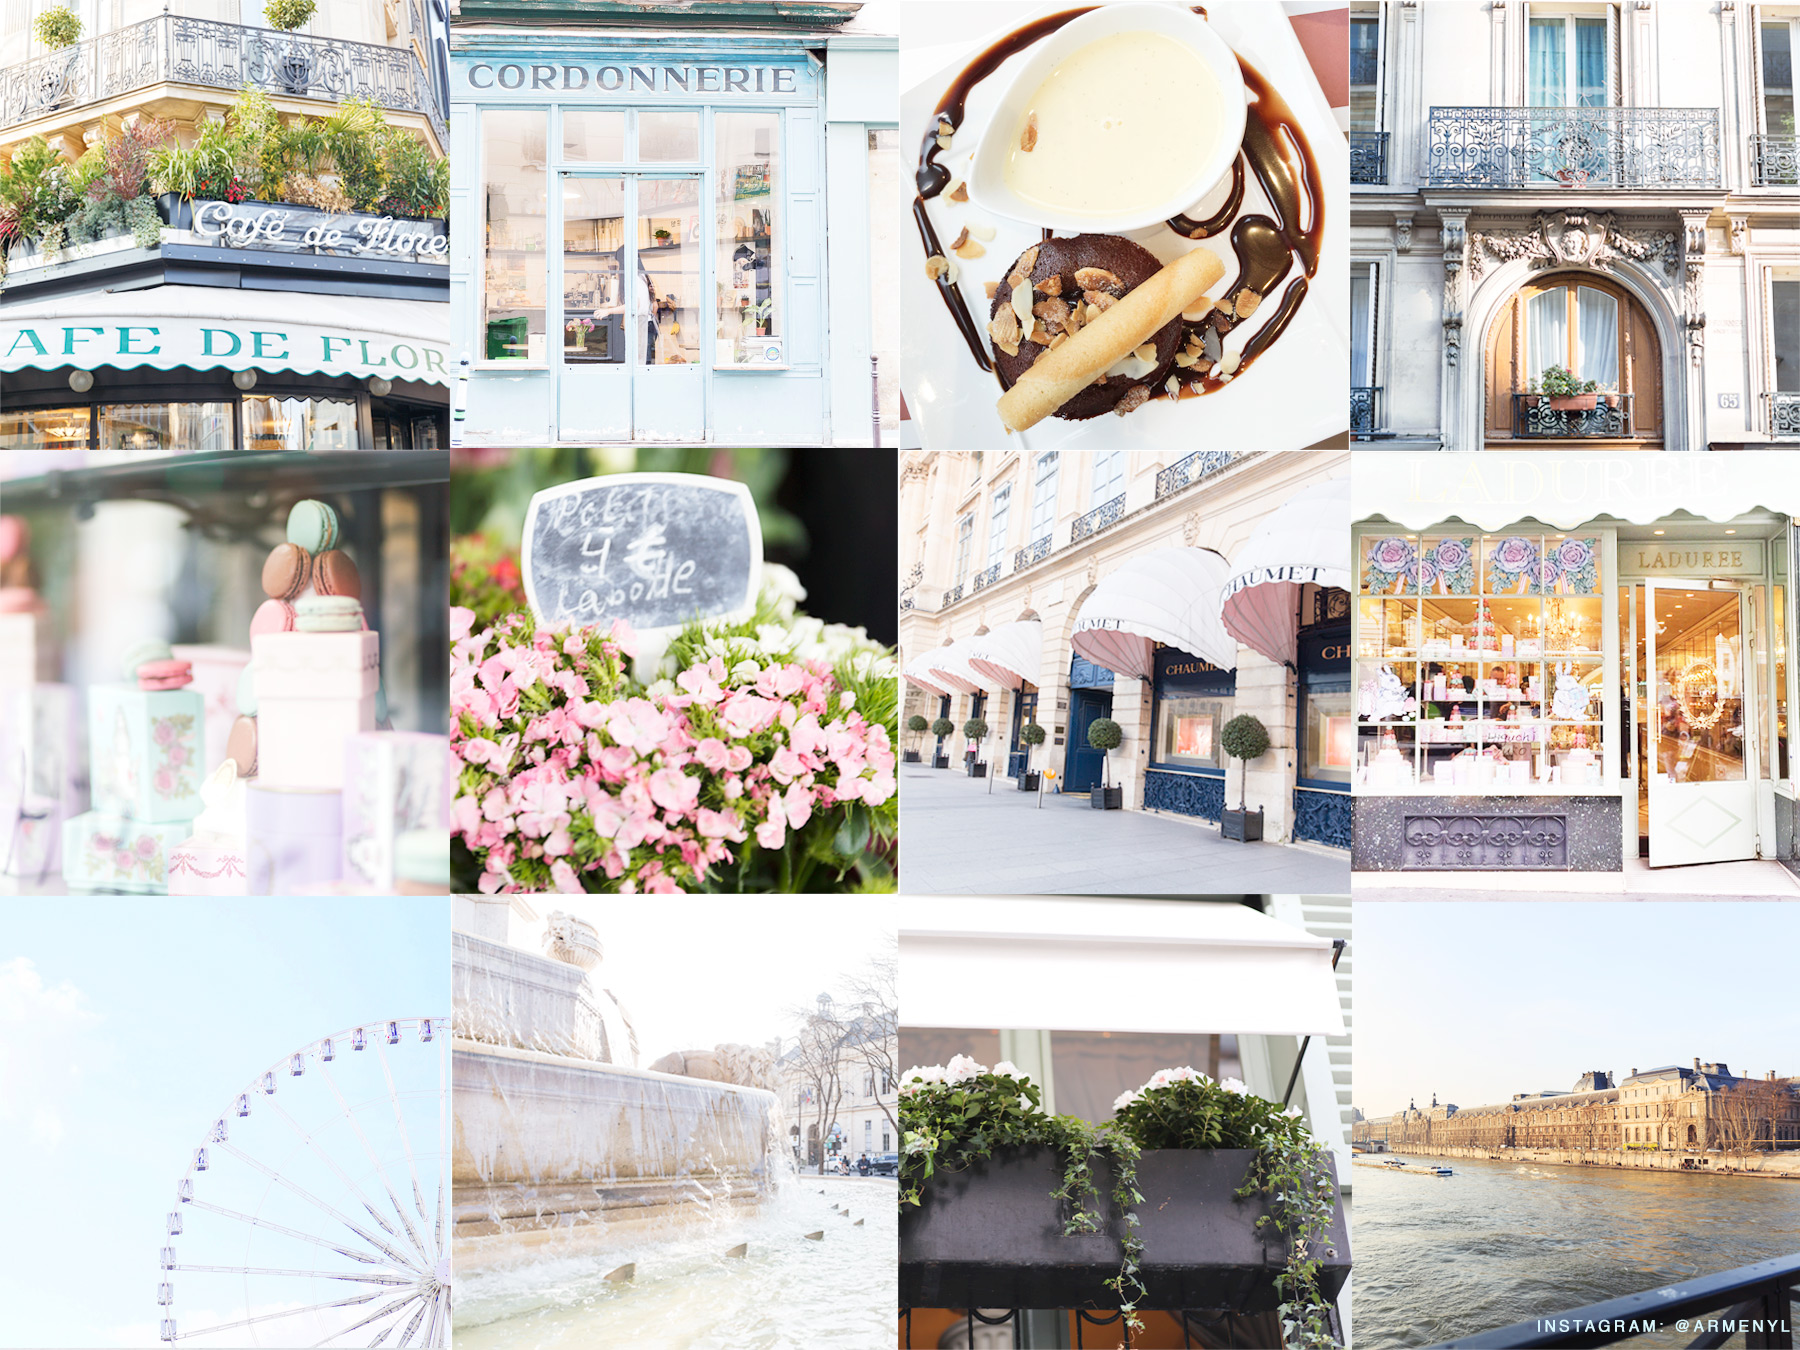 Paris snapshots by Armenyl's instgram